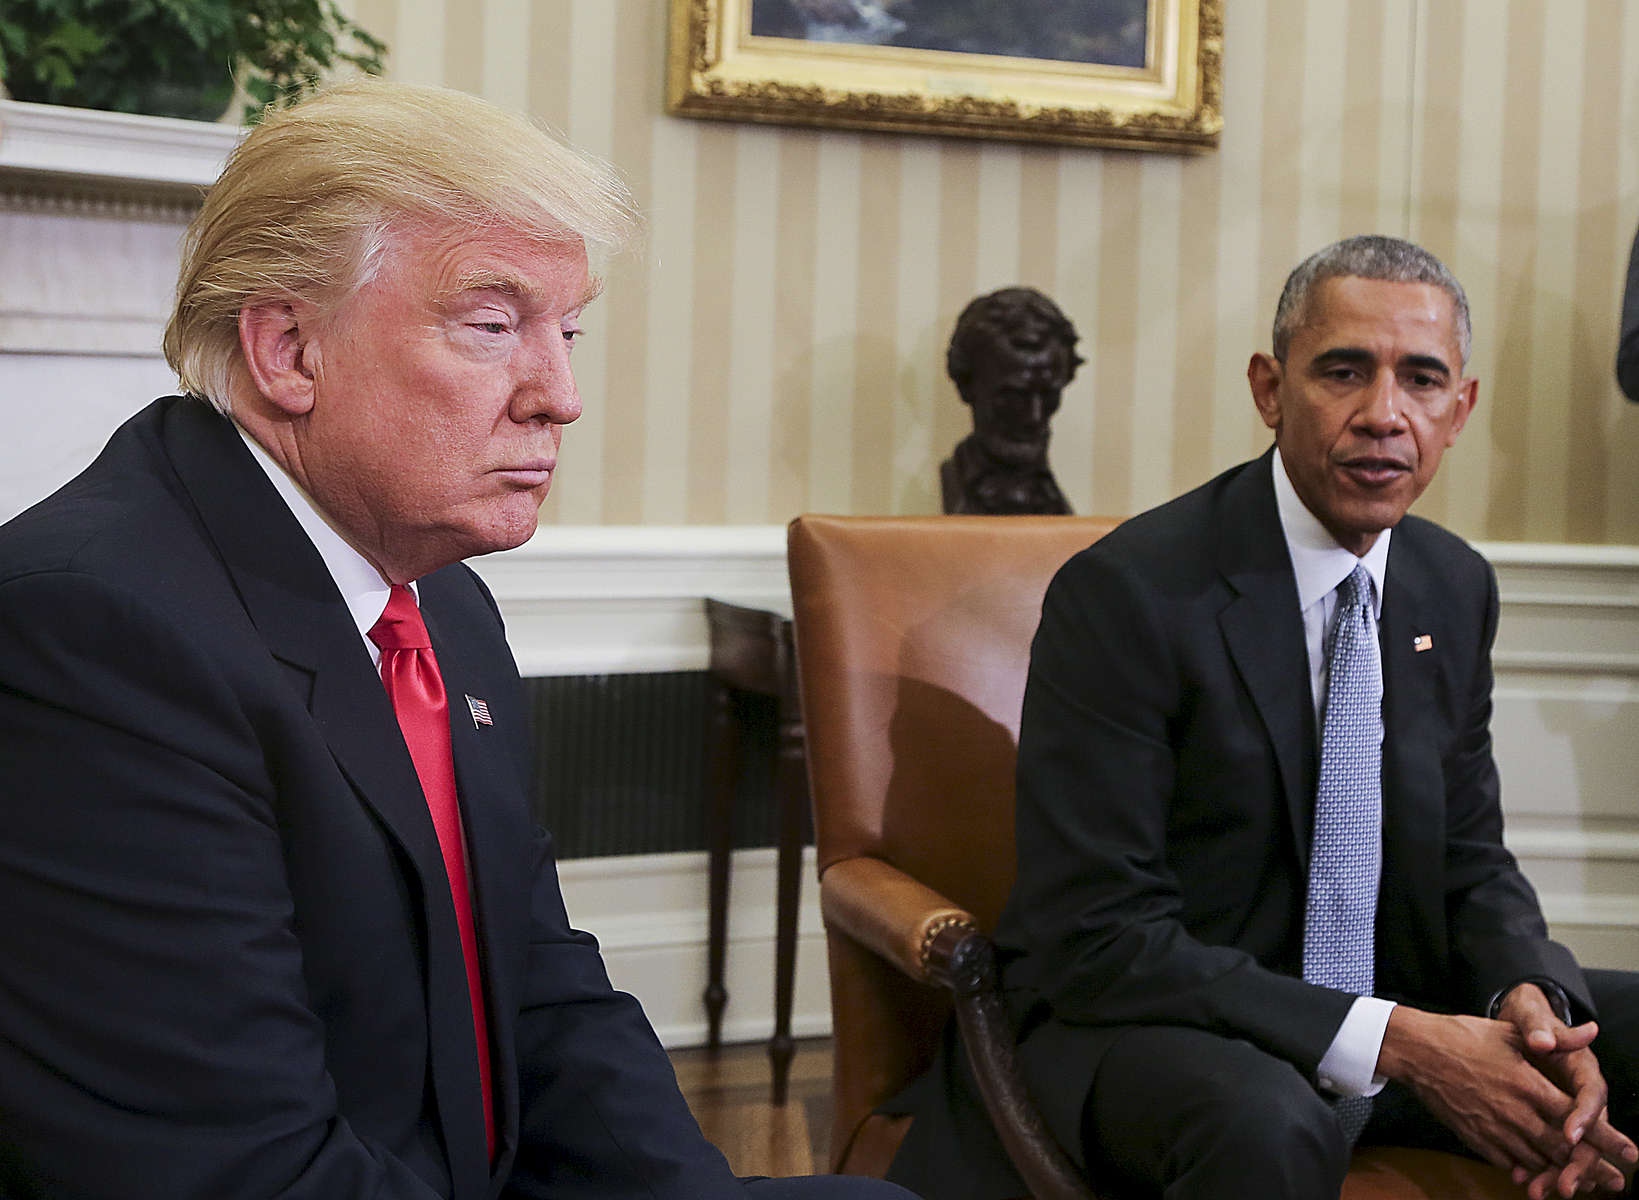 US President elect Donald Trump meets with US President Barack Obama for the first time in the Oval Office.